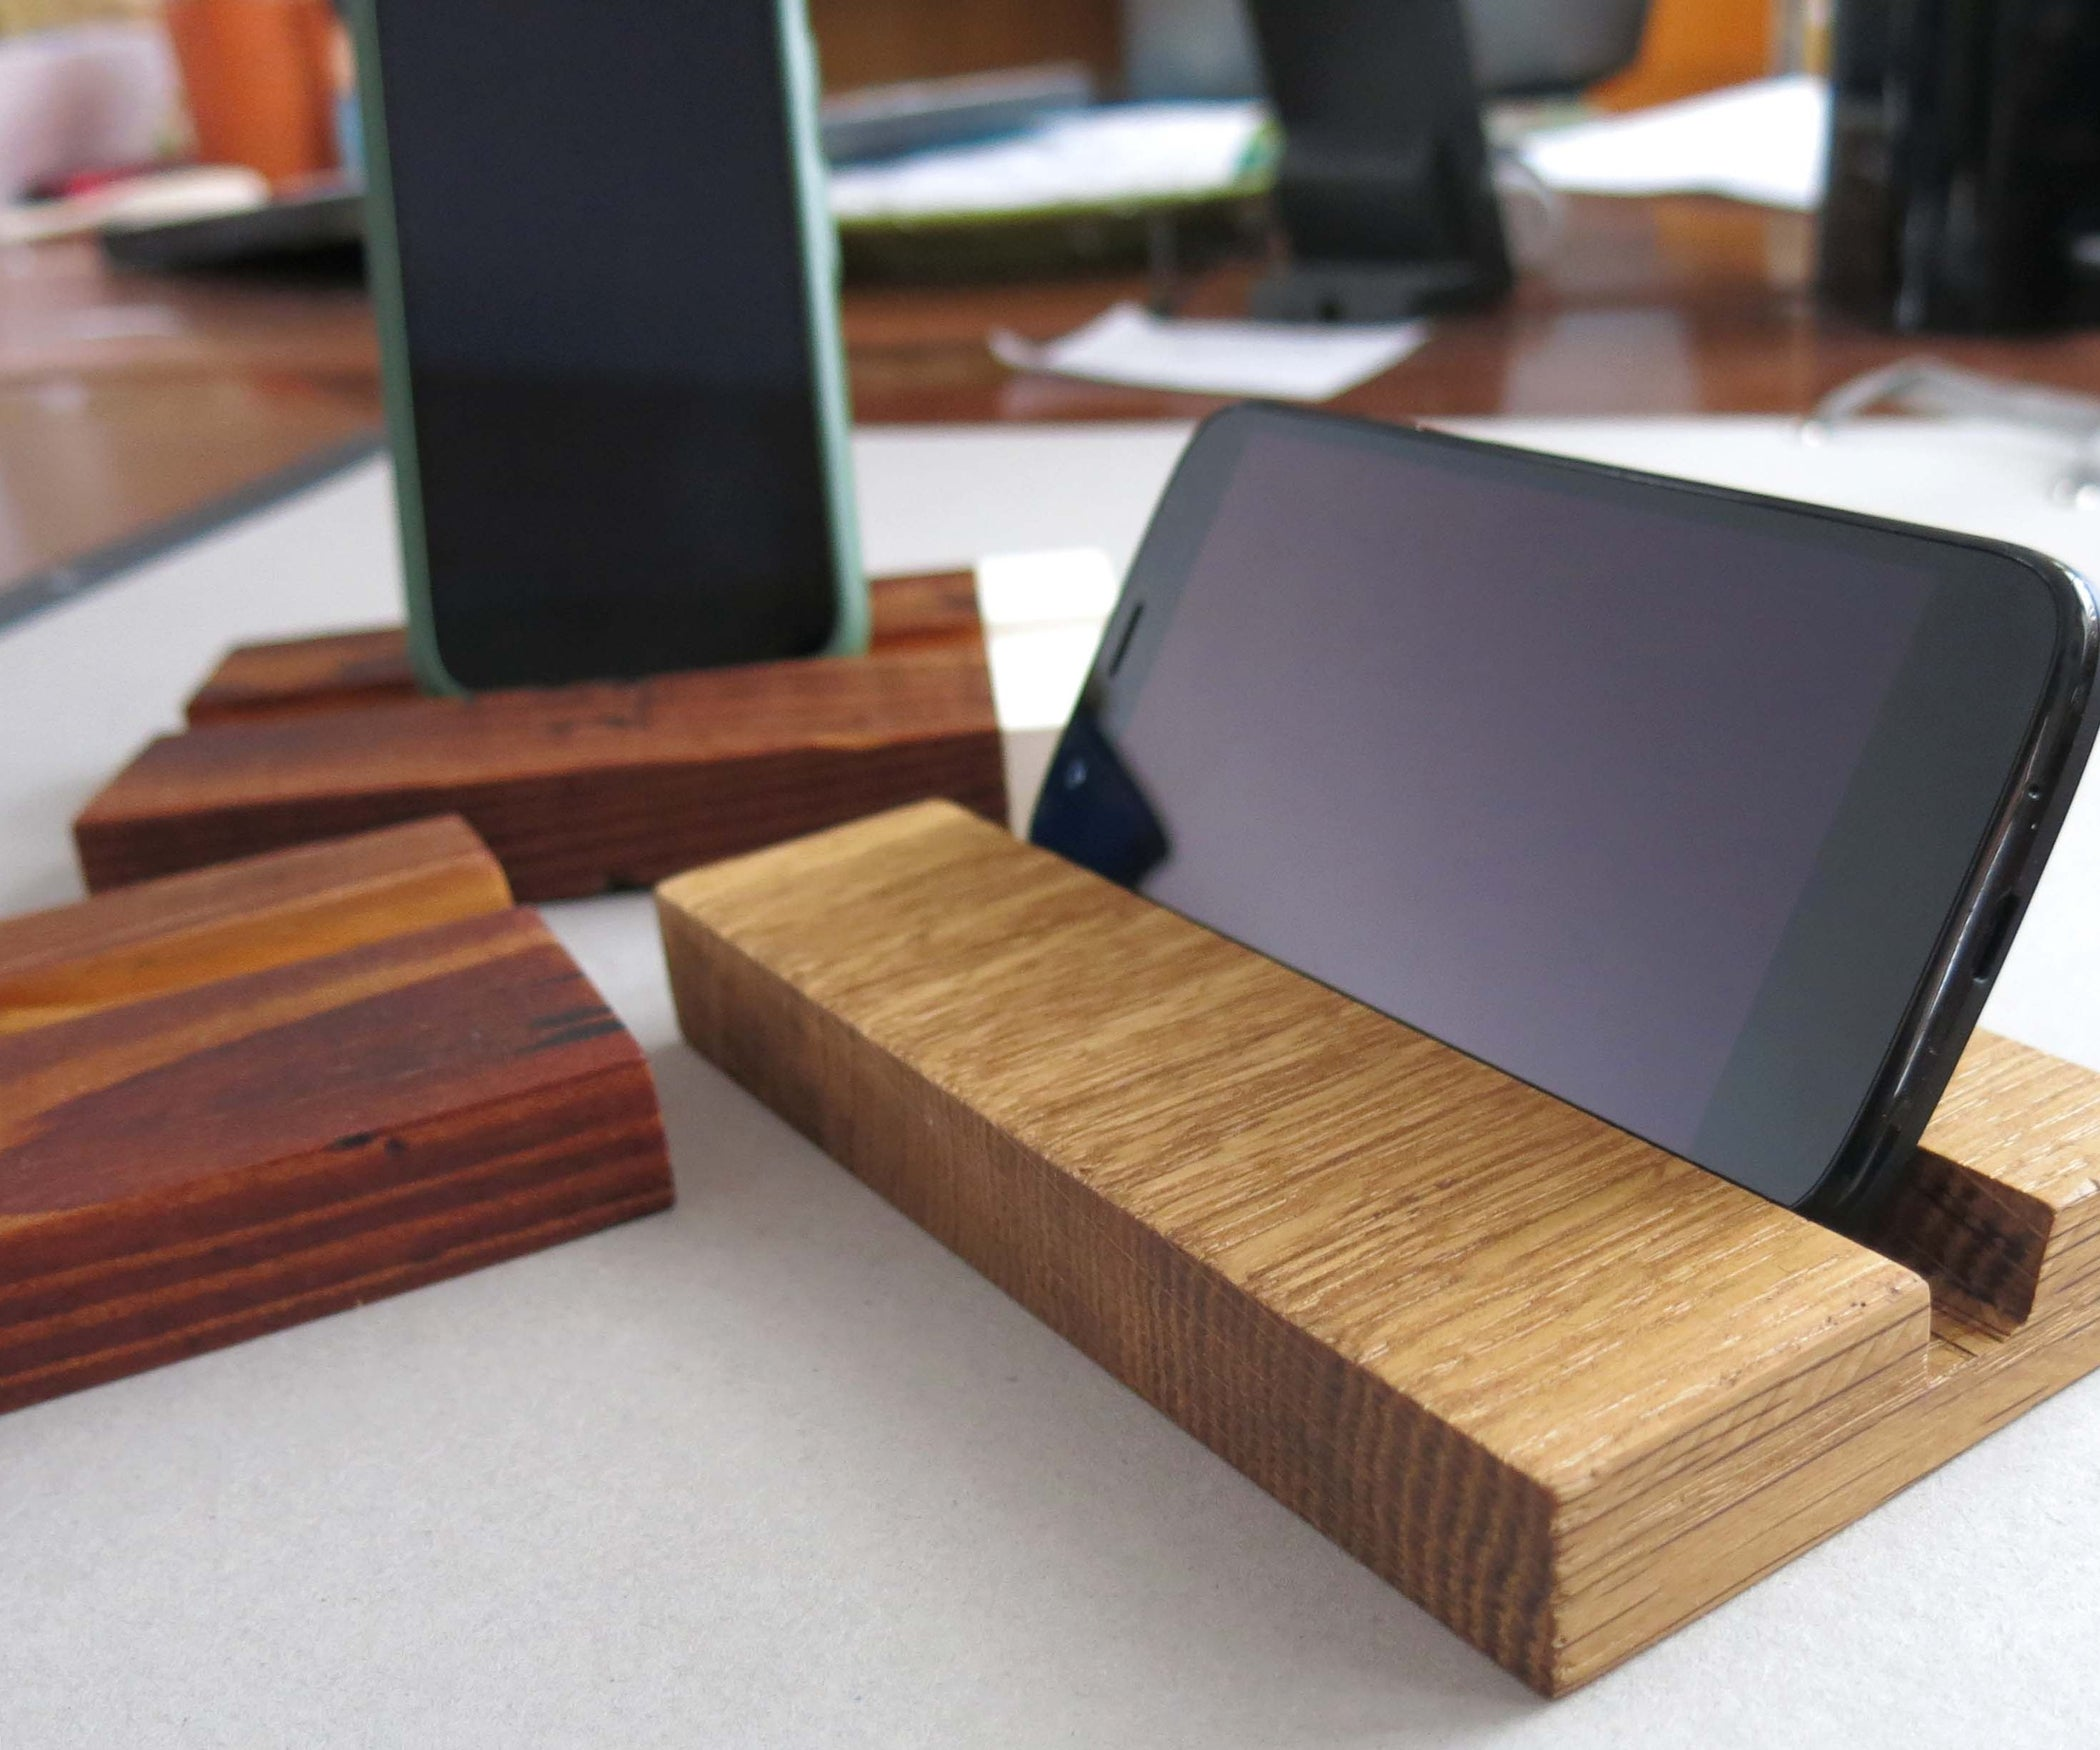 DIY Wooden Phone Stand